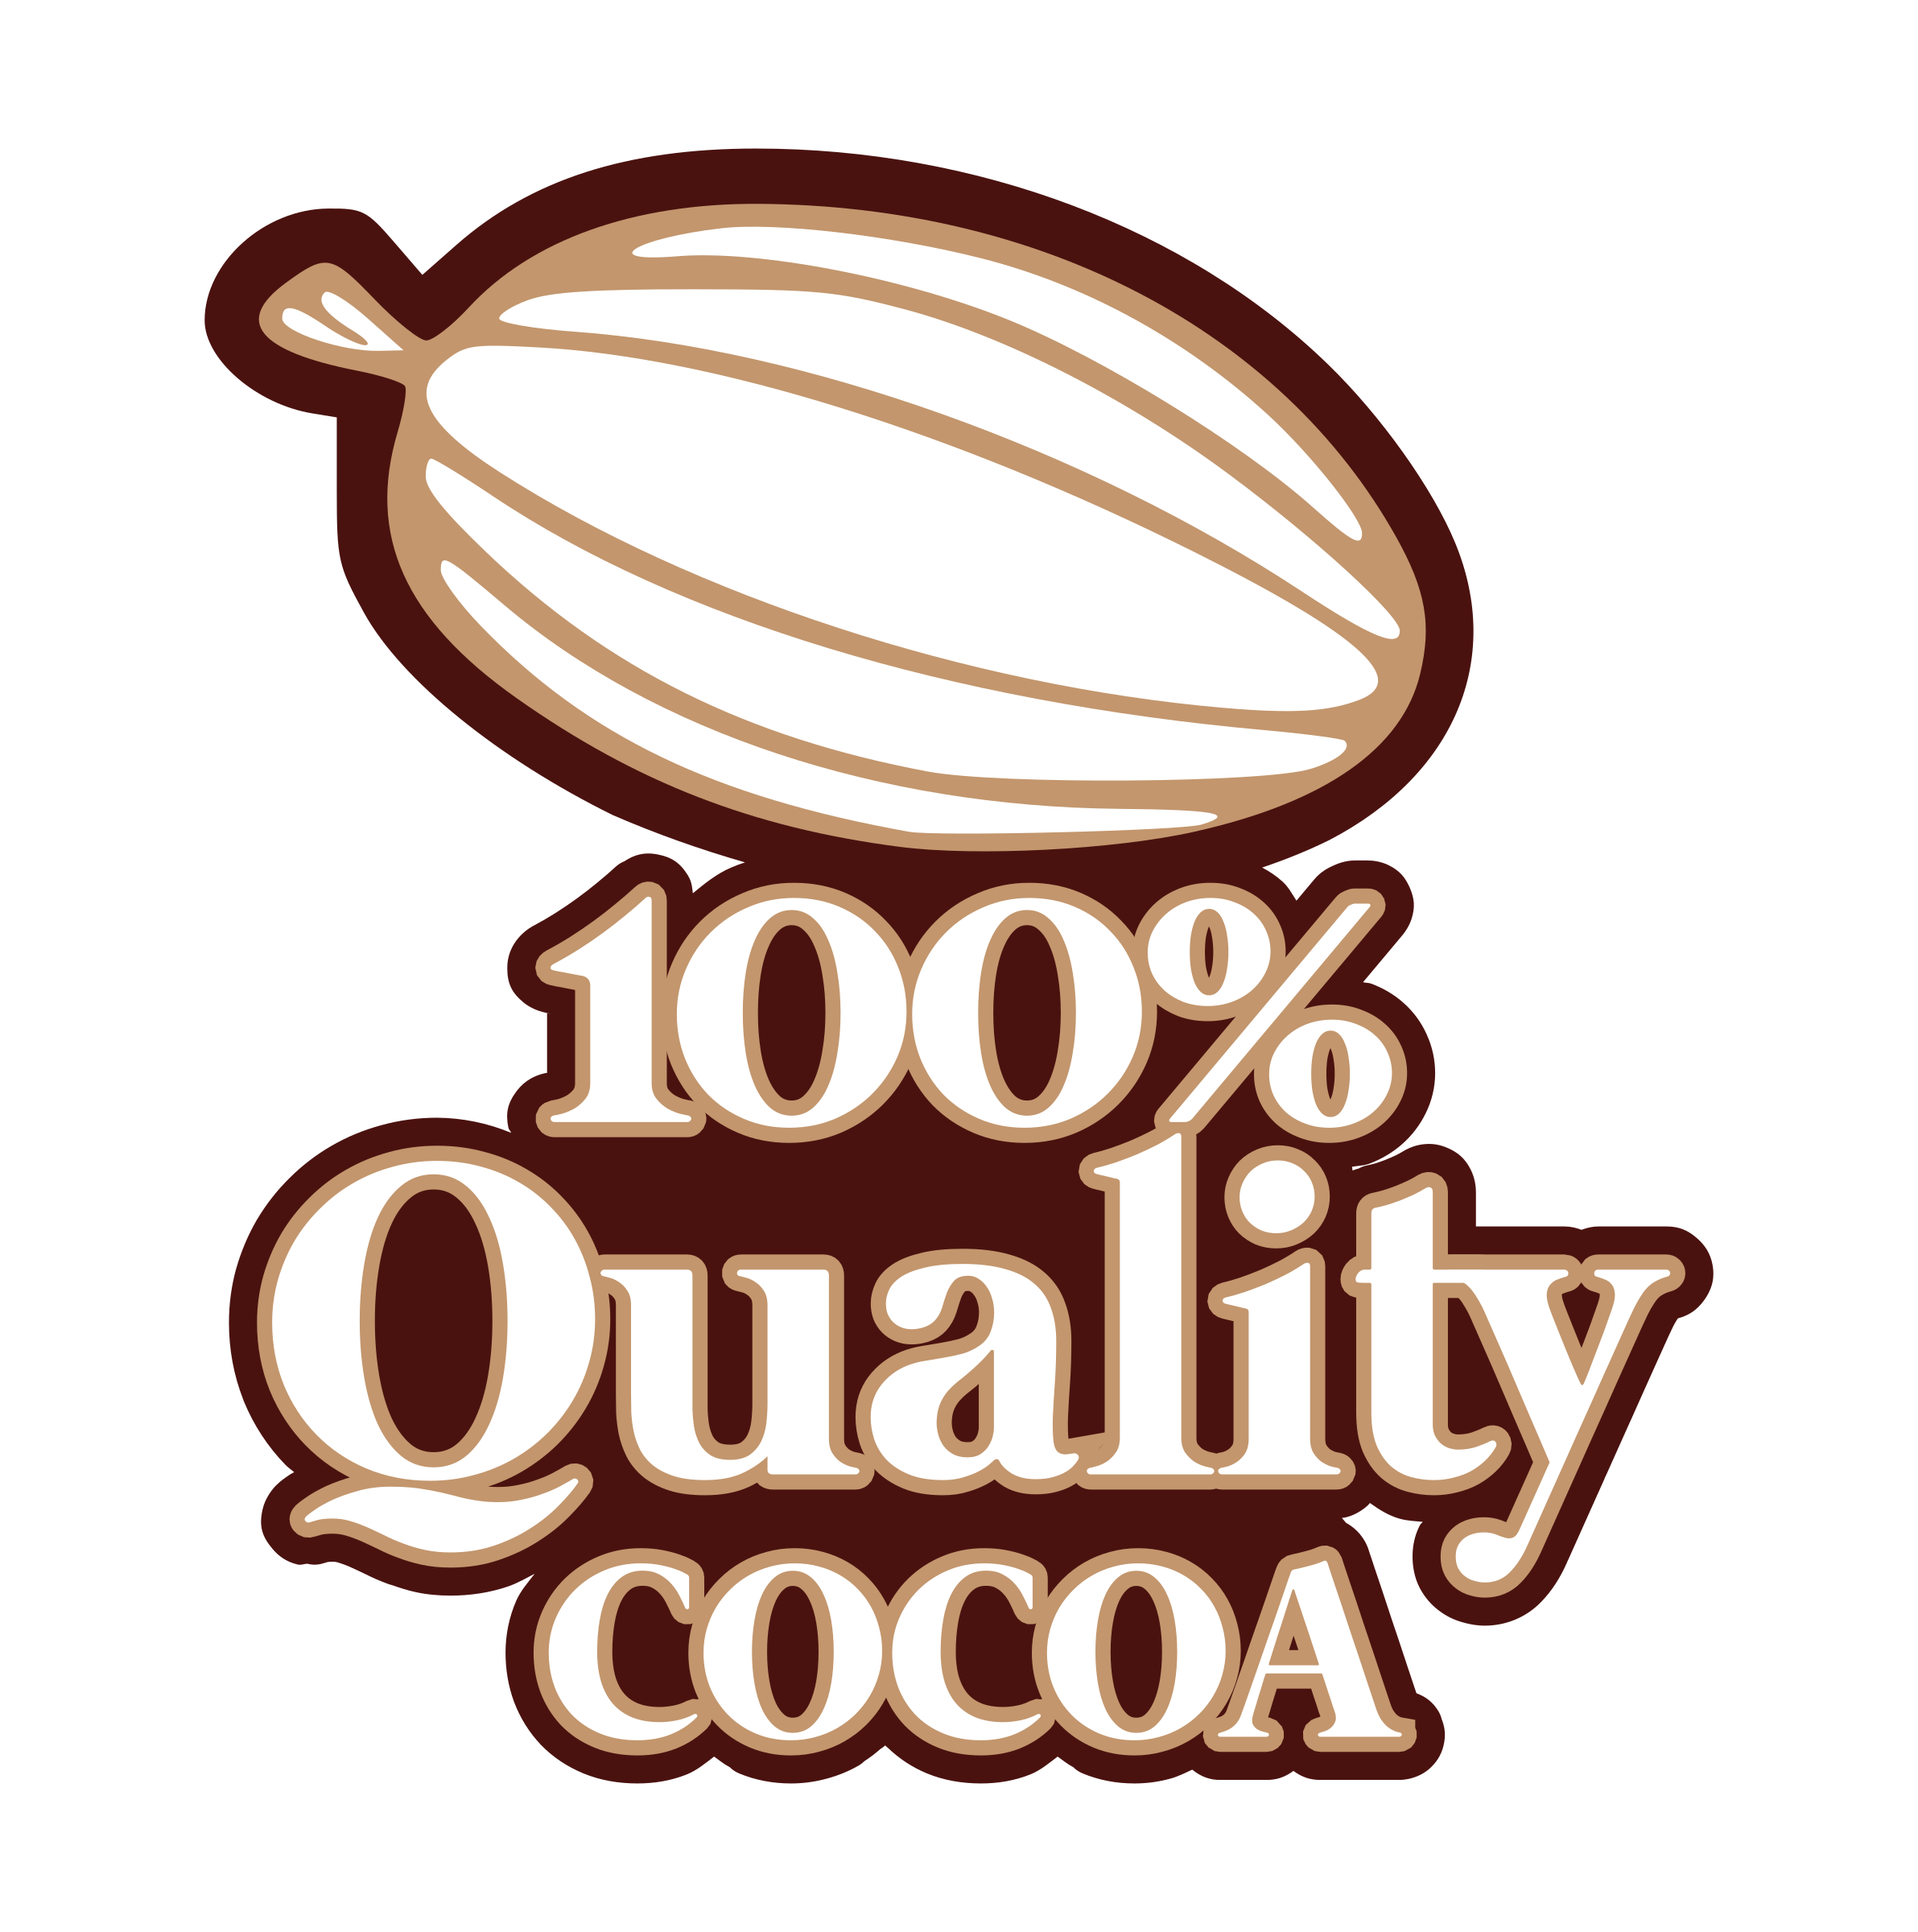 100% Quality COCOA by gnokii